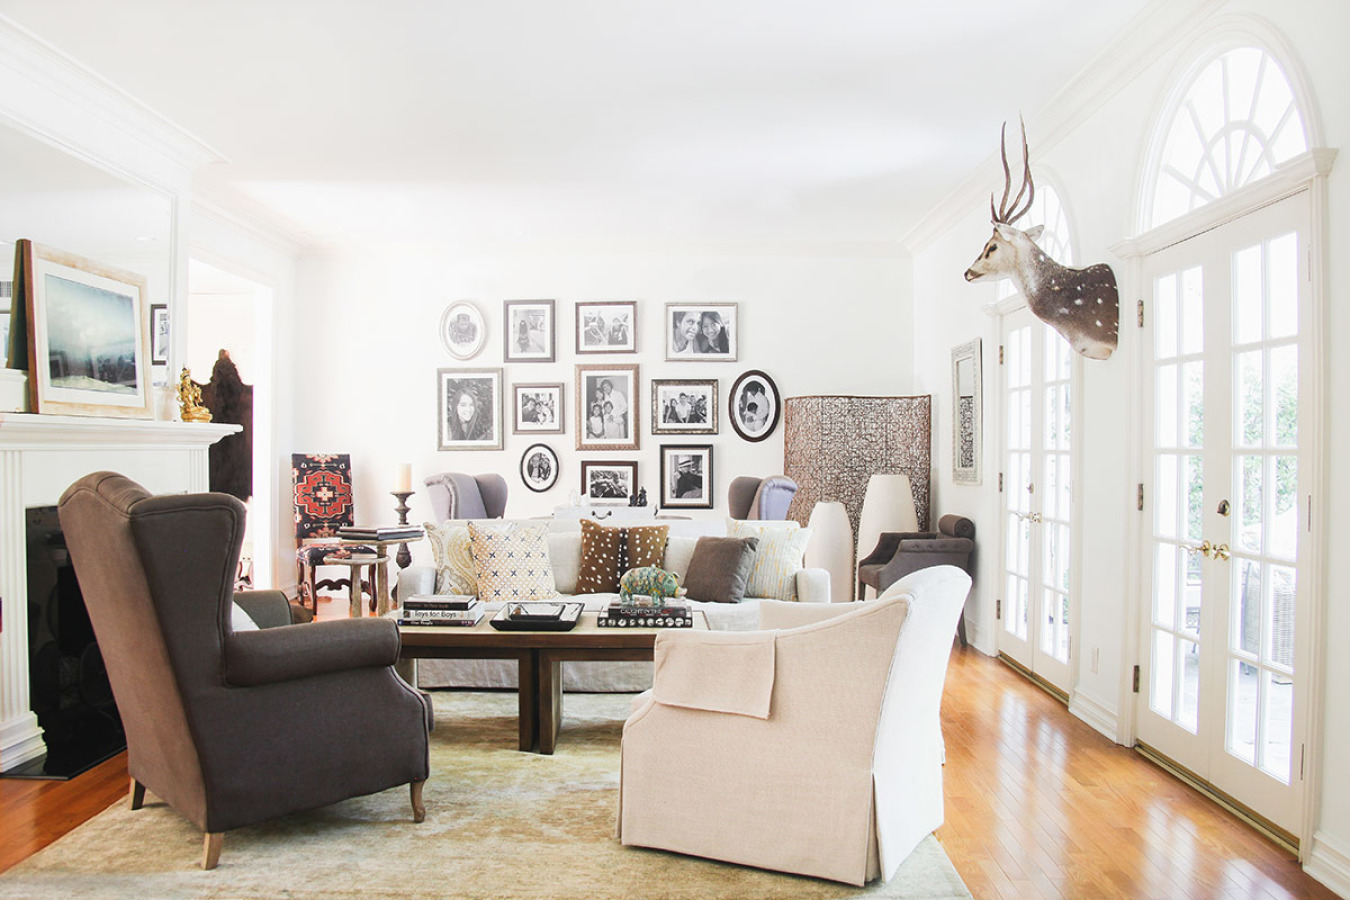 In this cozy room, family photos printed in black-and-white lends an authentic and personal touch that compliments the neutral color palette.